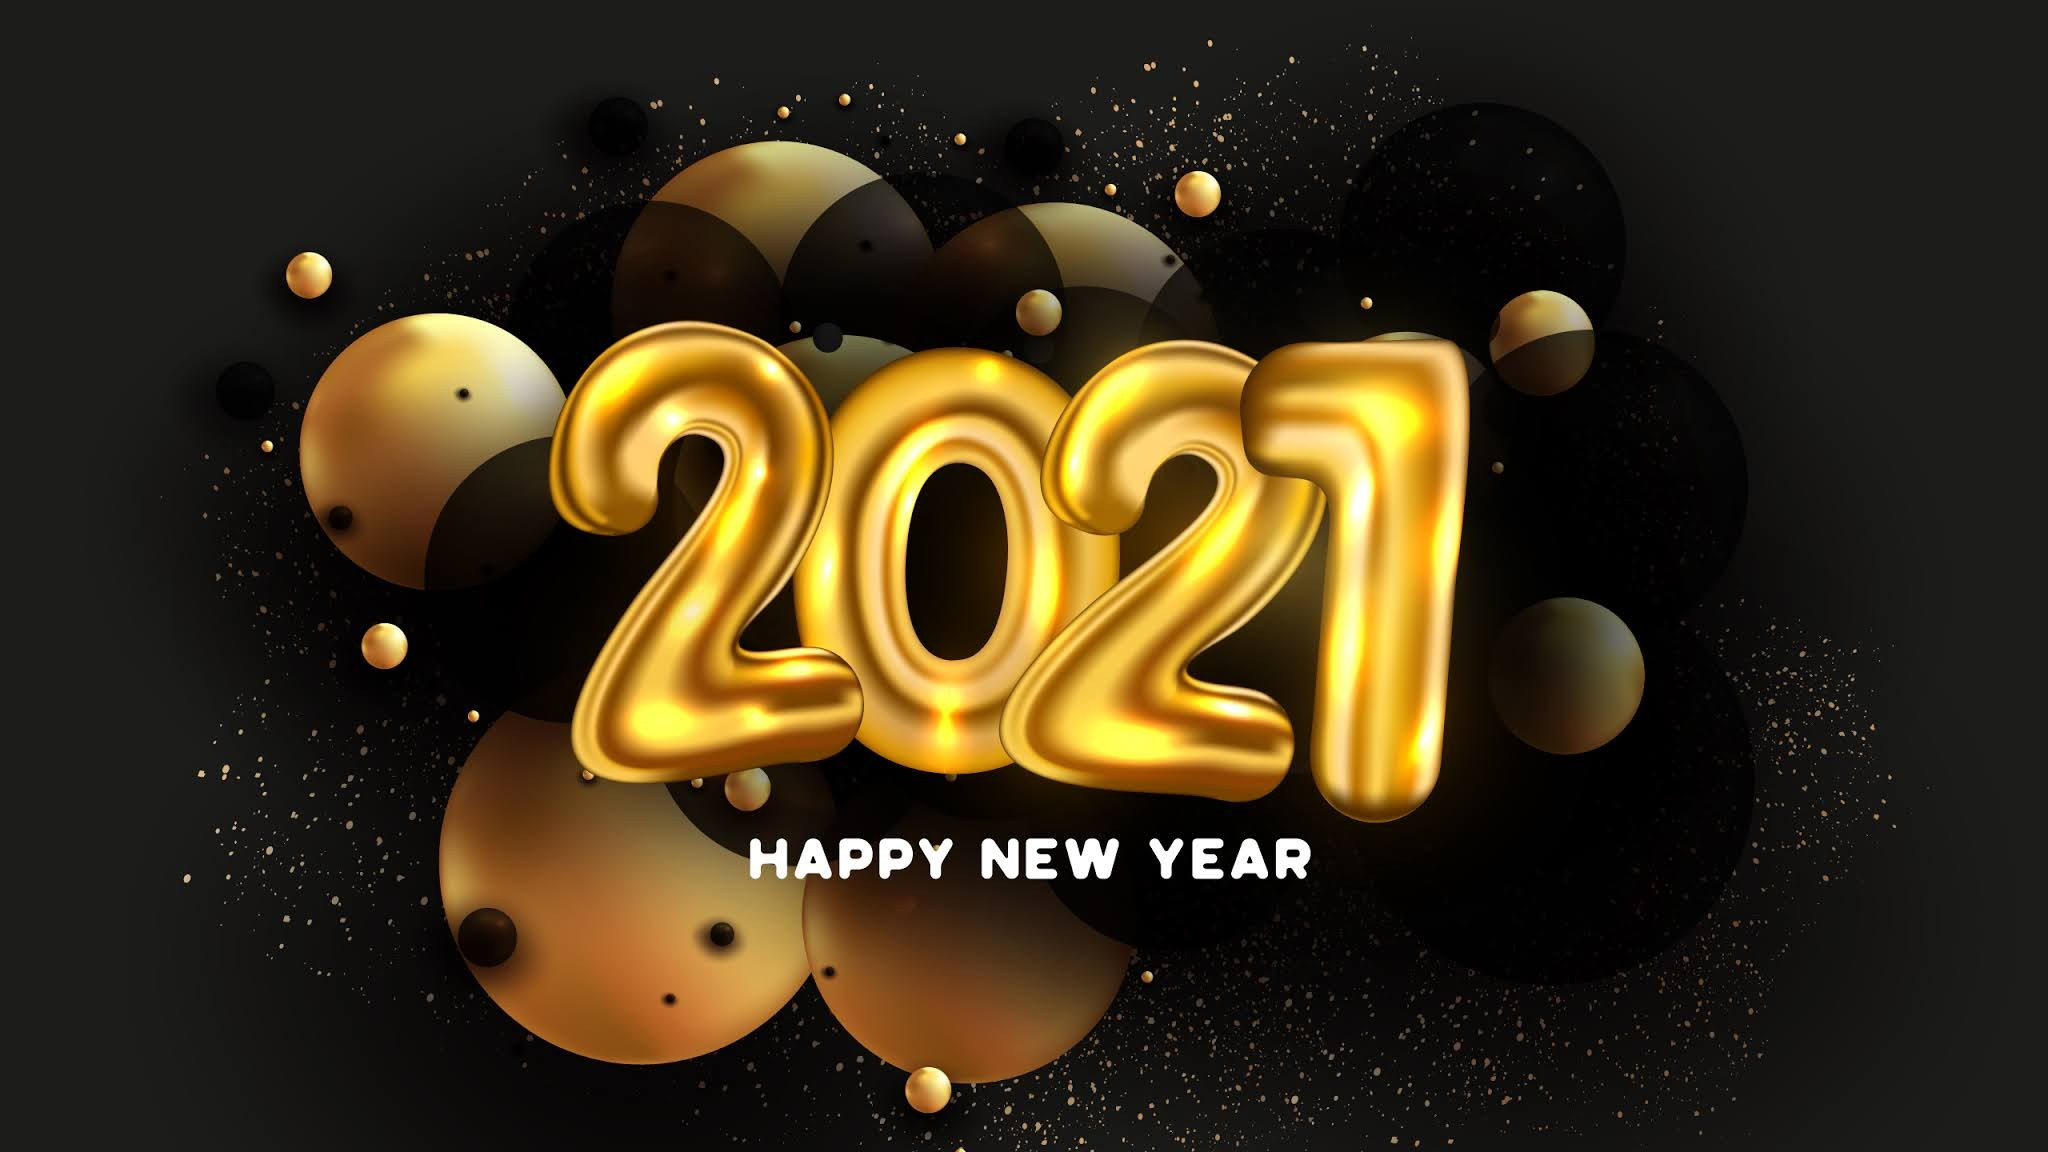 New Year 2021 hd wallpaper download